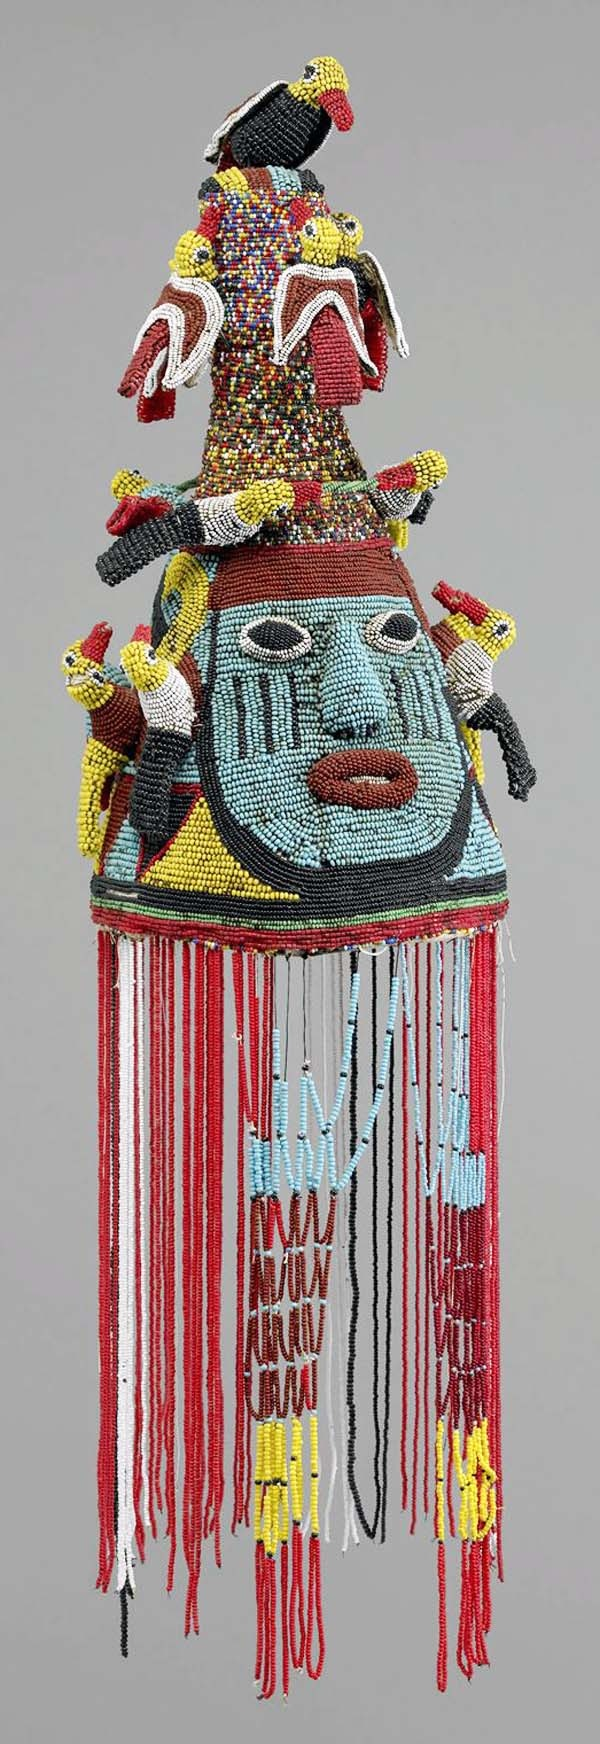 Africa | Royal headdress.  Yoruba people.  20th century. Fiber and glass beads | Beaded items have long been associated with royalty among the Yoruba. Cone-like crowns like this one are primary symbols of a king's authority. When wearing it, a king becomes connected to royal ancestors, thereby strengthening his authority.  Since it is prohibited for people to gaze directly at the king's head, a veil is included to conceal him.